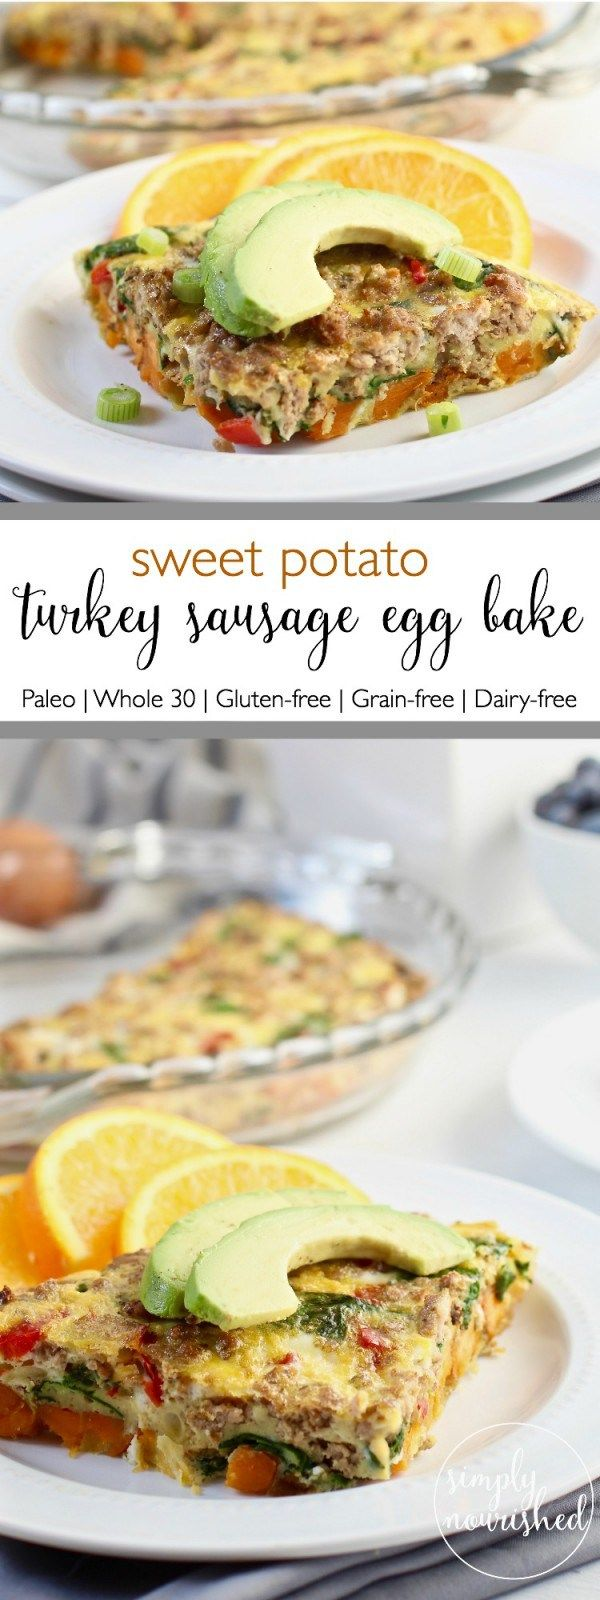 Sweet Potato Turkey Sausage Egg Bake   30-minute meal idea   This Sweet Potato Turkey Sausage Egg Bake combines a blend of ingredients creating a perfect sweet and savory dish. A freezer-friendly recipe   Paleo   Whole30   Gluten-free  Dairy-free   http://simplynourishedrecipes.com/sweet-potato-turkey-sausage-egg-bake/